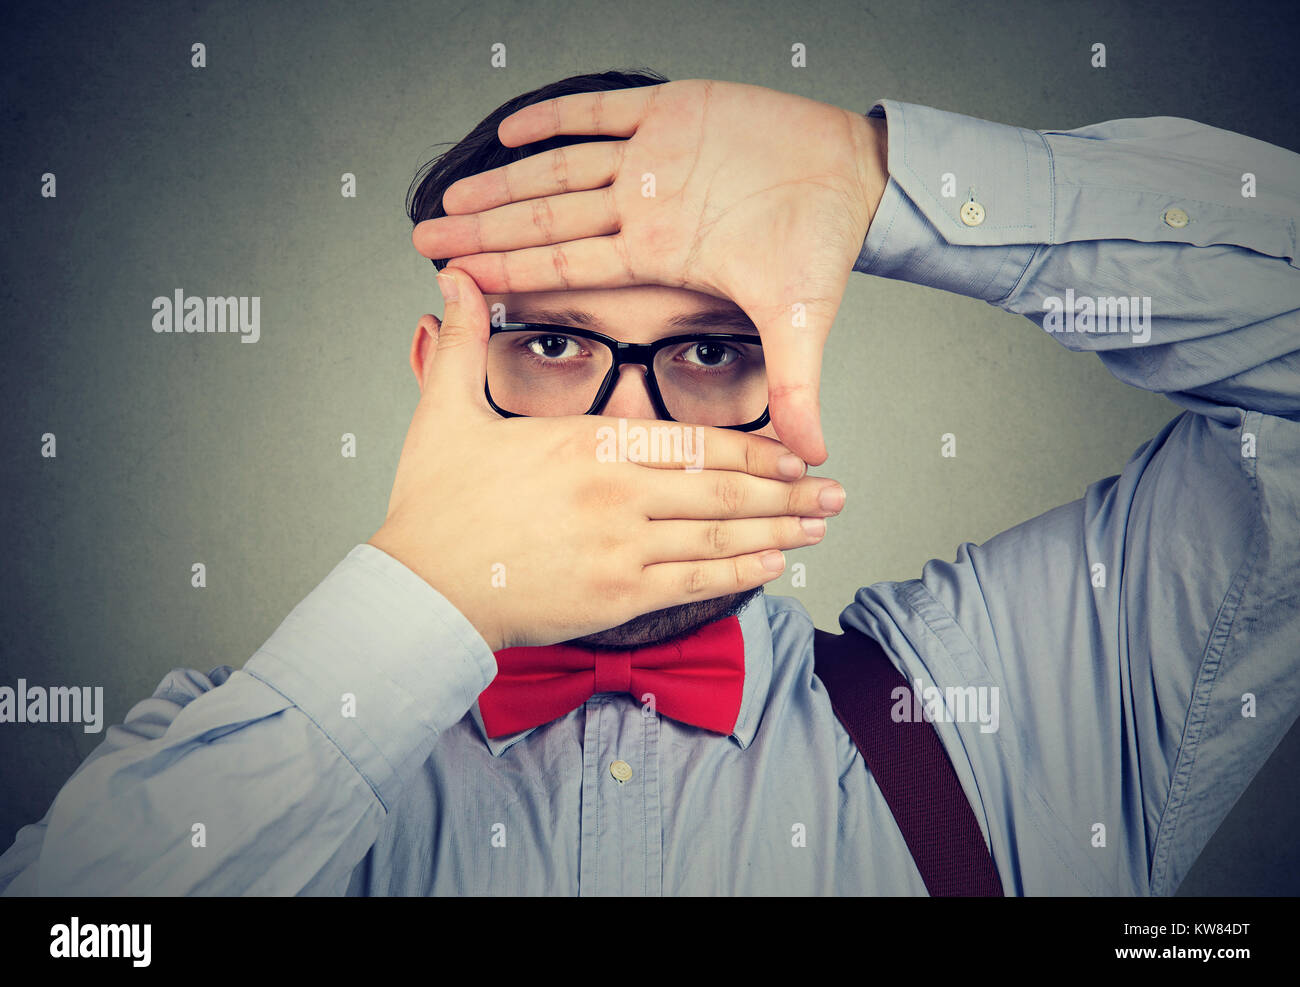 Chunky man making frame and looking at camera with limited vision. - Stock Image